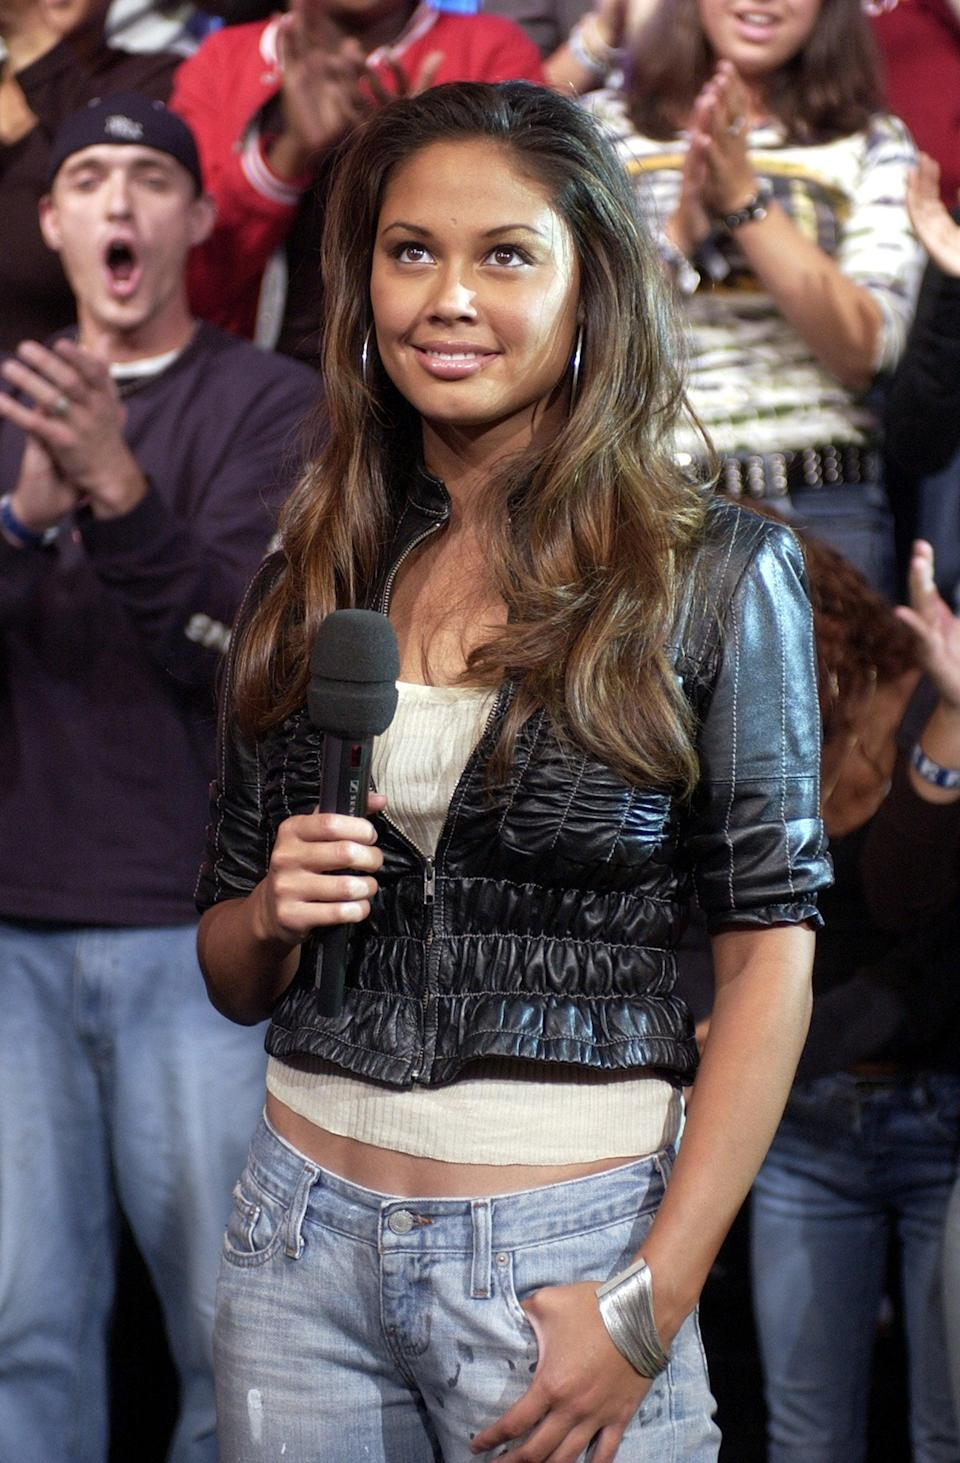 <p>Vanessa Lachey (then Minnillo) was one of the new MTV VJs for <b>TRL</b> in 2003.</p>